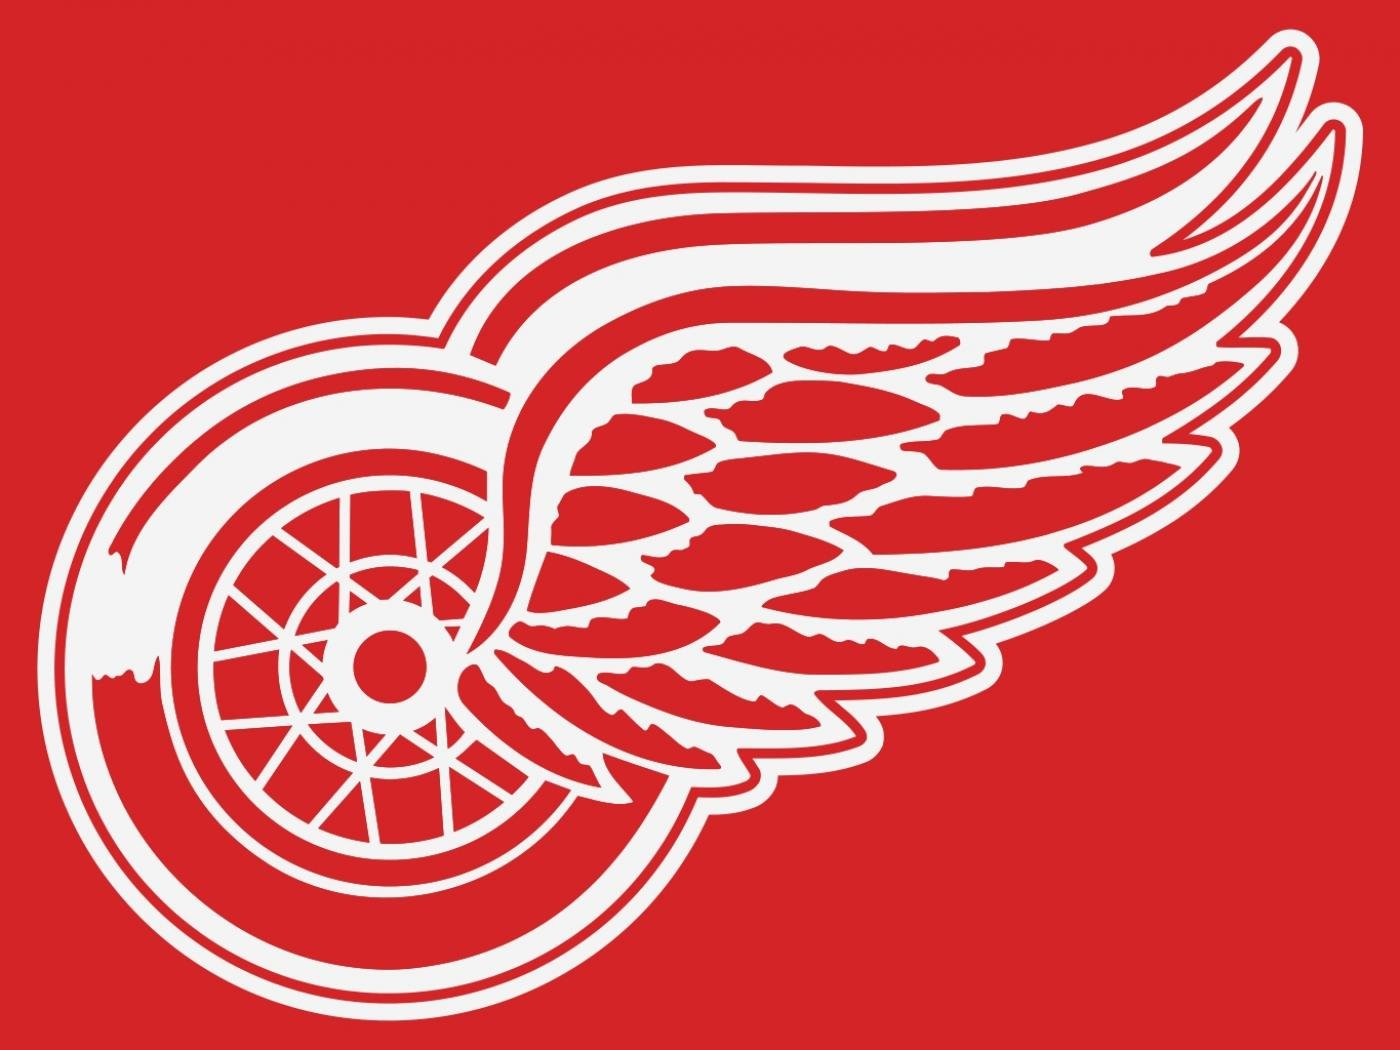 Free Download Detroit Red Wings Wallpaper ID54637 Hd 1400x1050 For Computer